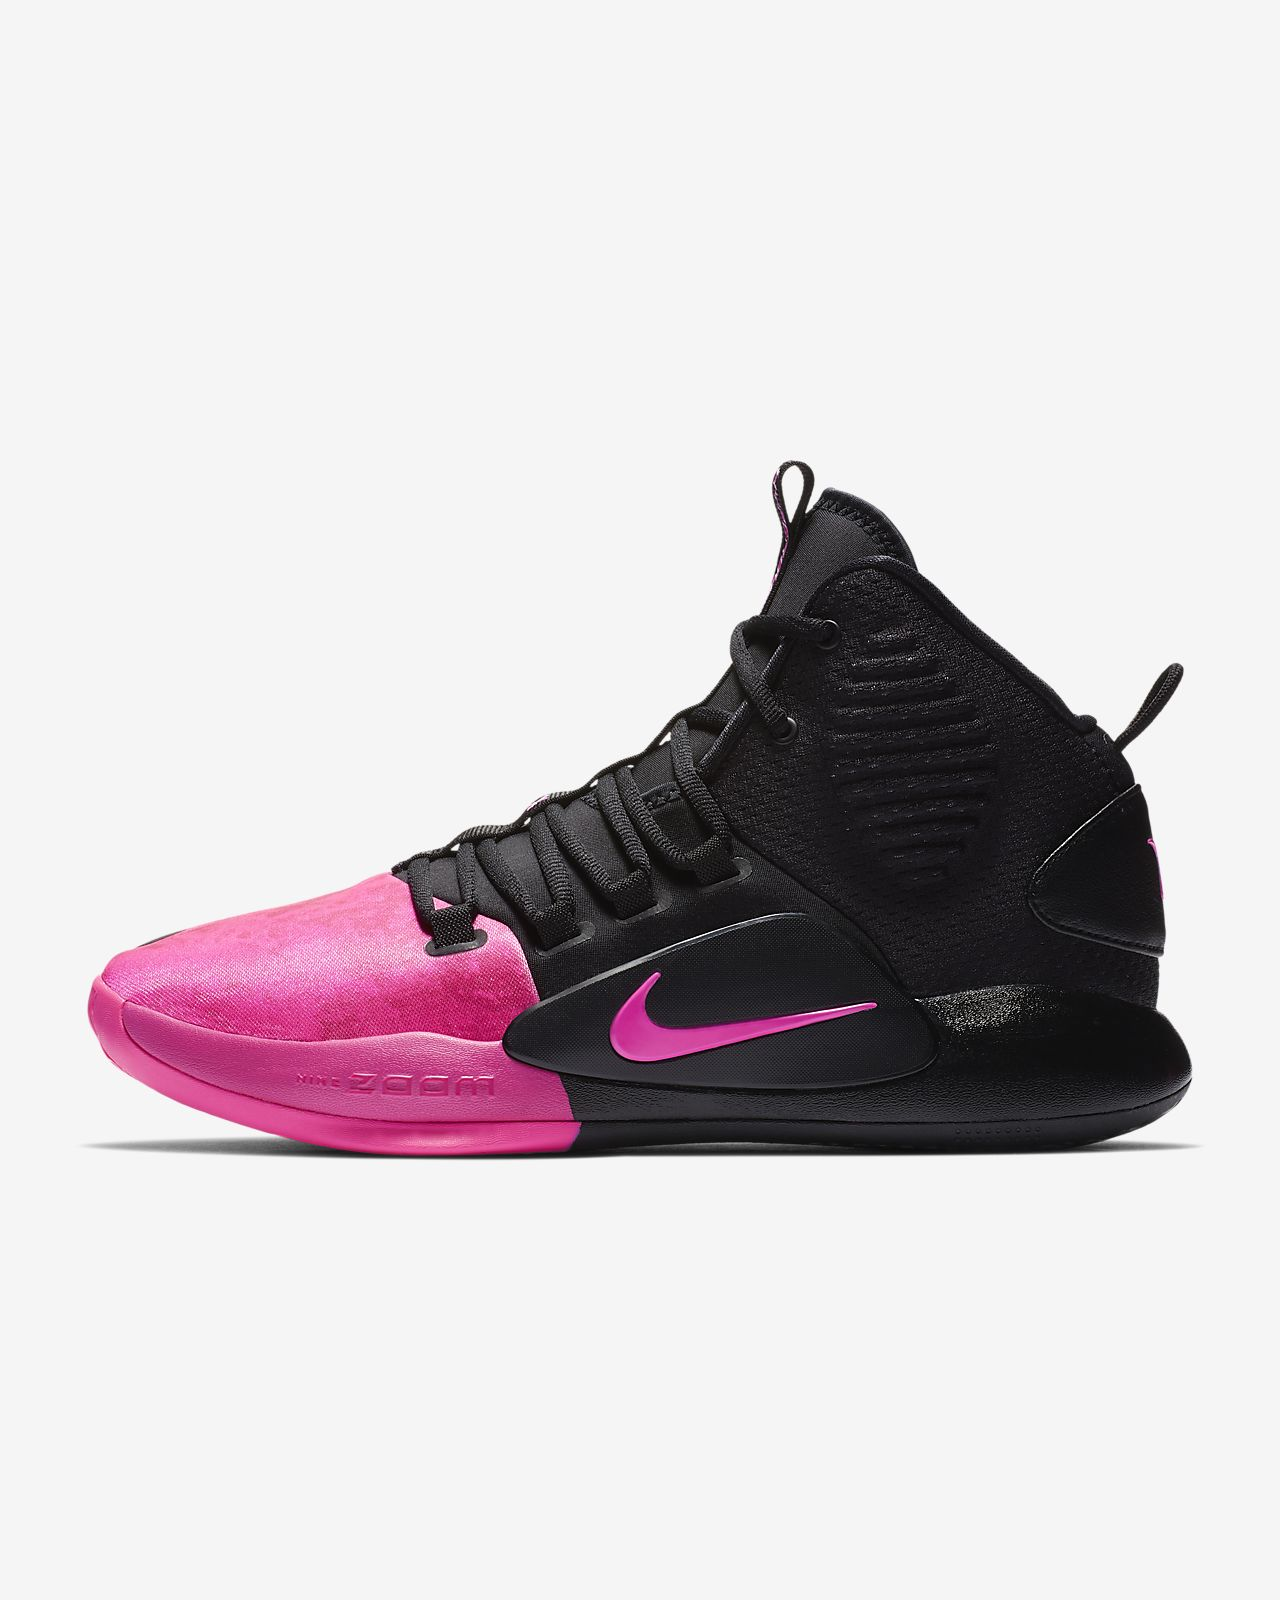 huge selection of 95aab 0fcfd ... promo code for nike hyperdunk x kay yow mens basketball shoe 4c679 76d65